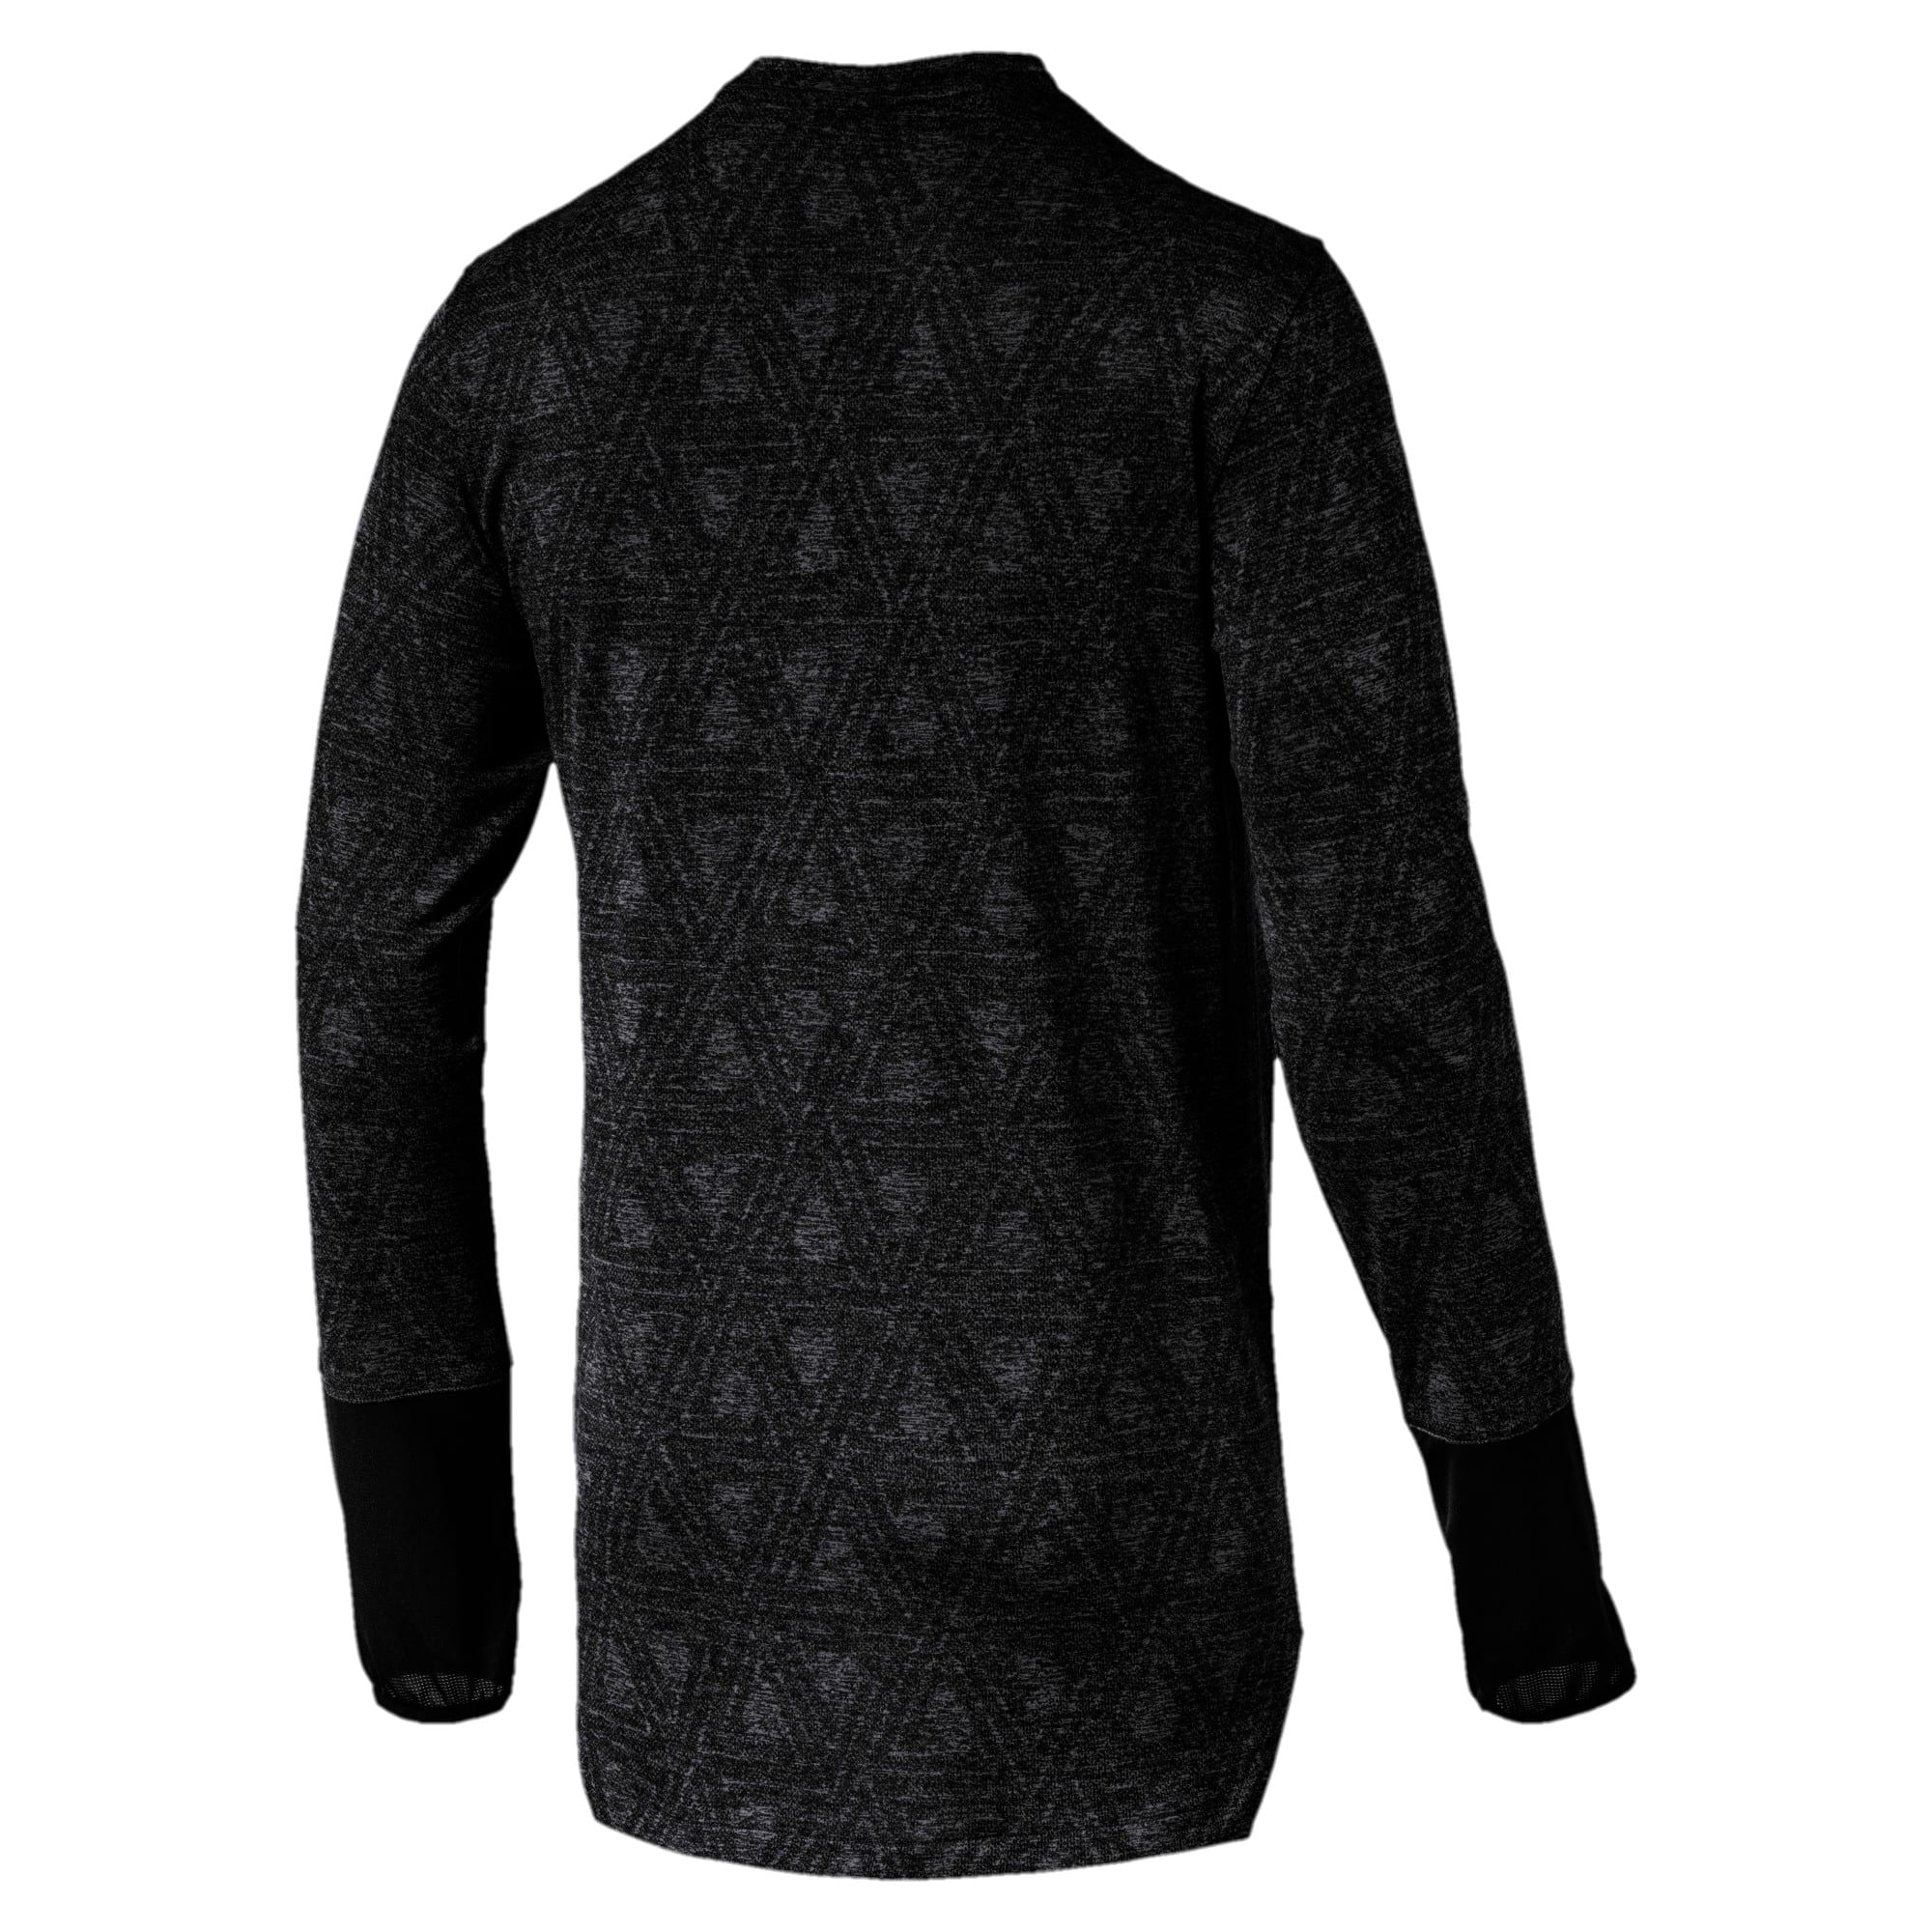 Energy Long Sleeve Tech Men's Running Top, Puma Black, large-IND